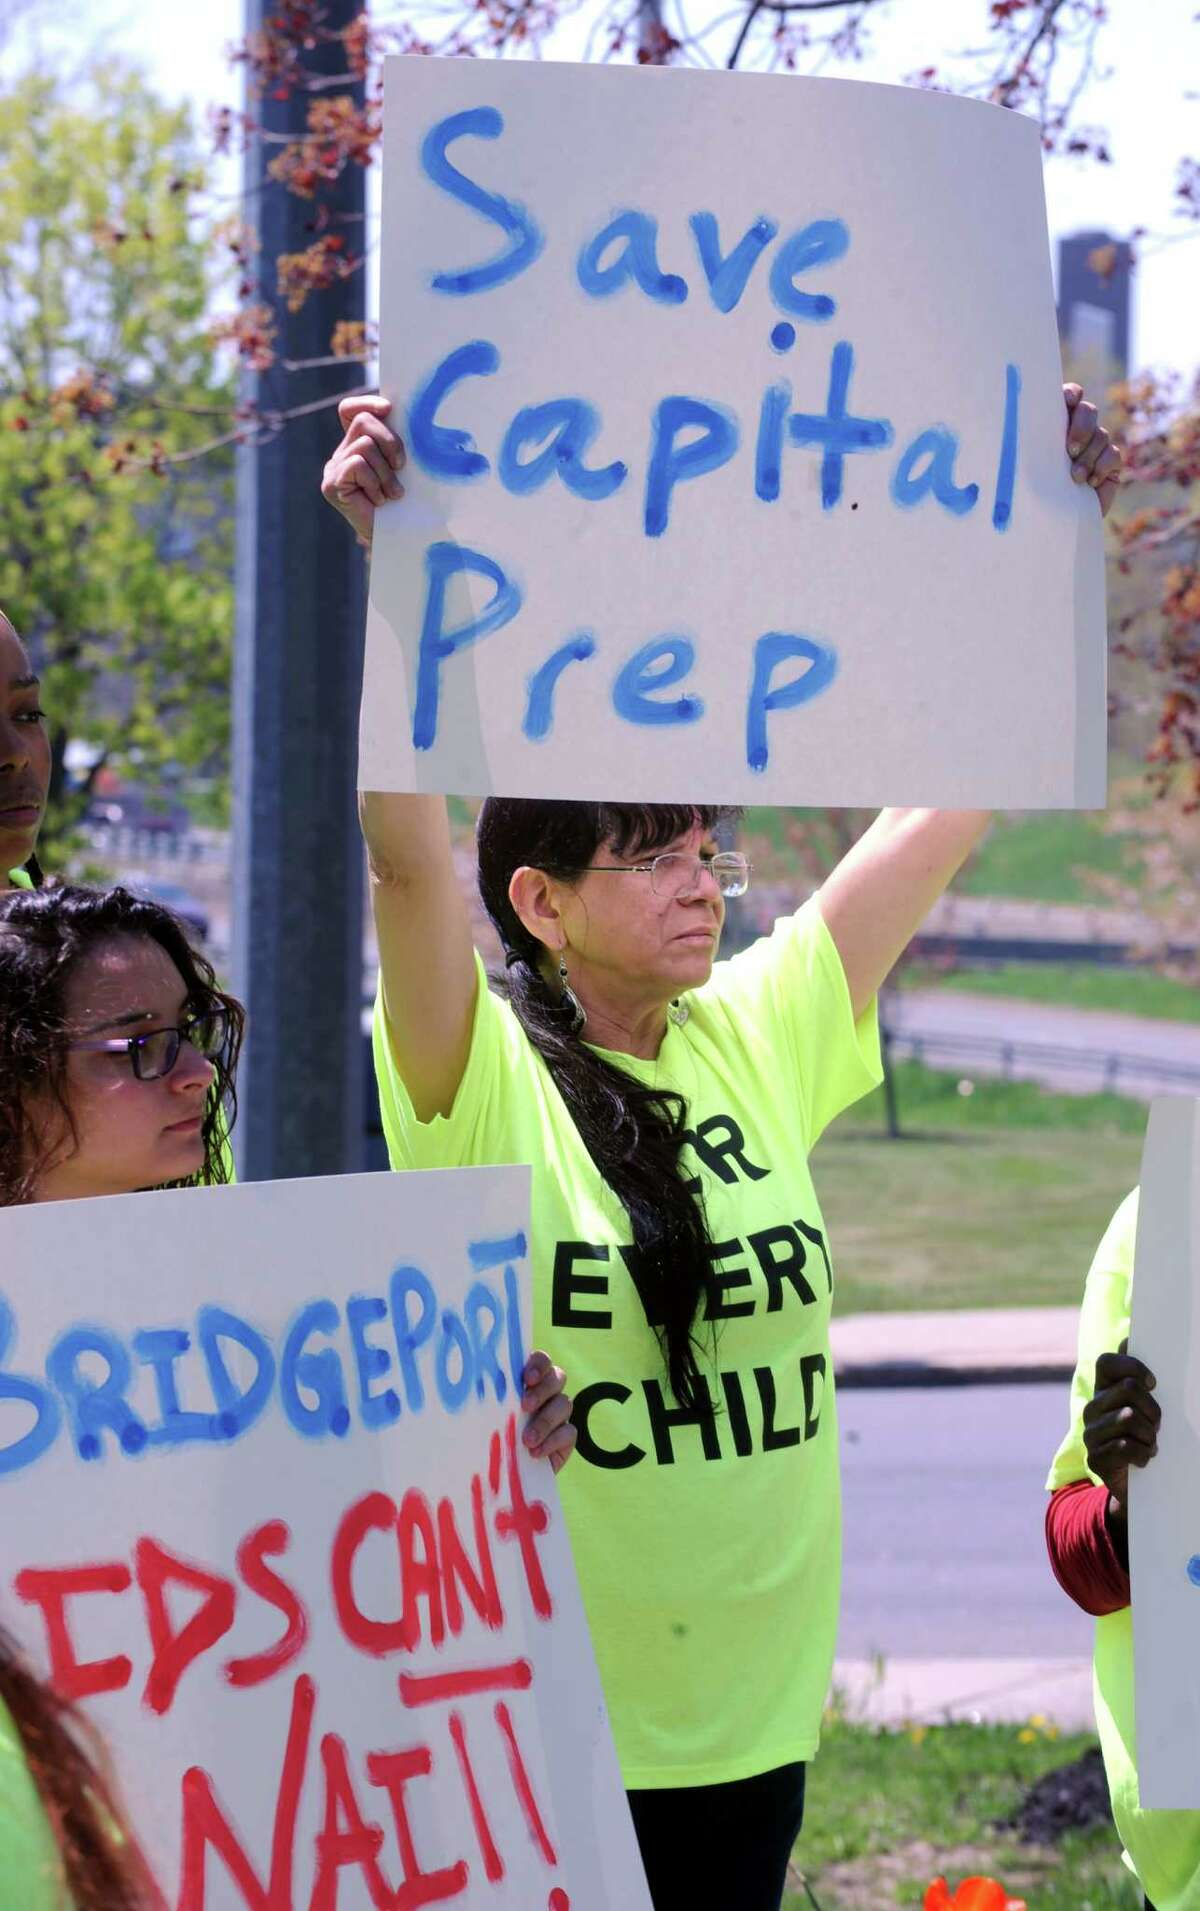 Elisa Martinez, a student at Bridge Academy, and Diana Toro, a grandmother to five students, held up signs as they rallied for restored state funding for a new charter school in City Hall Park in Bridgeport, Conn. on Monday, May 5, 2015.